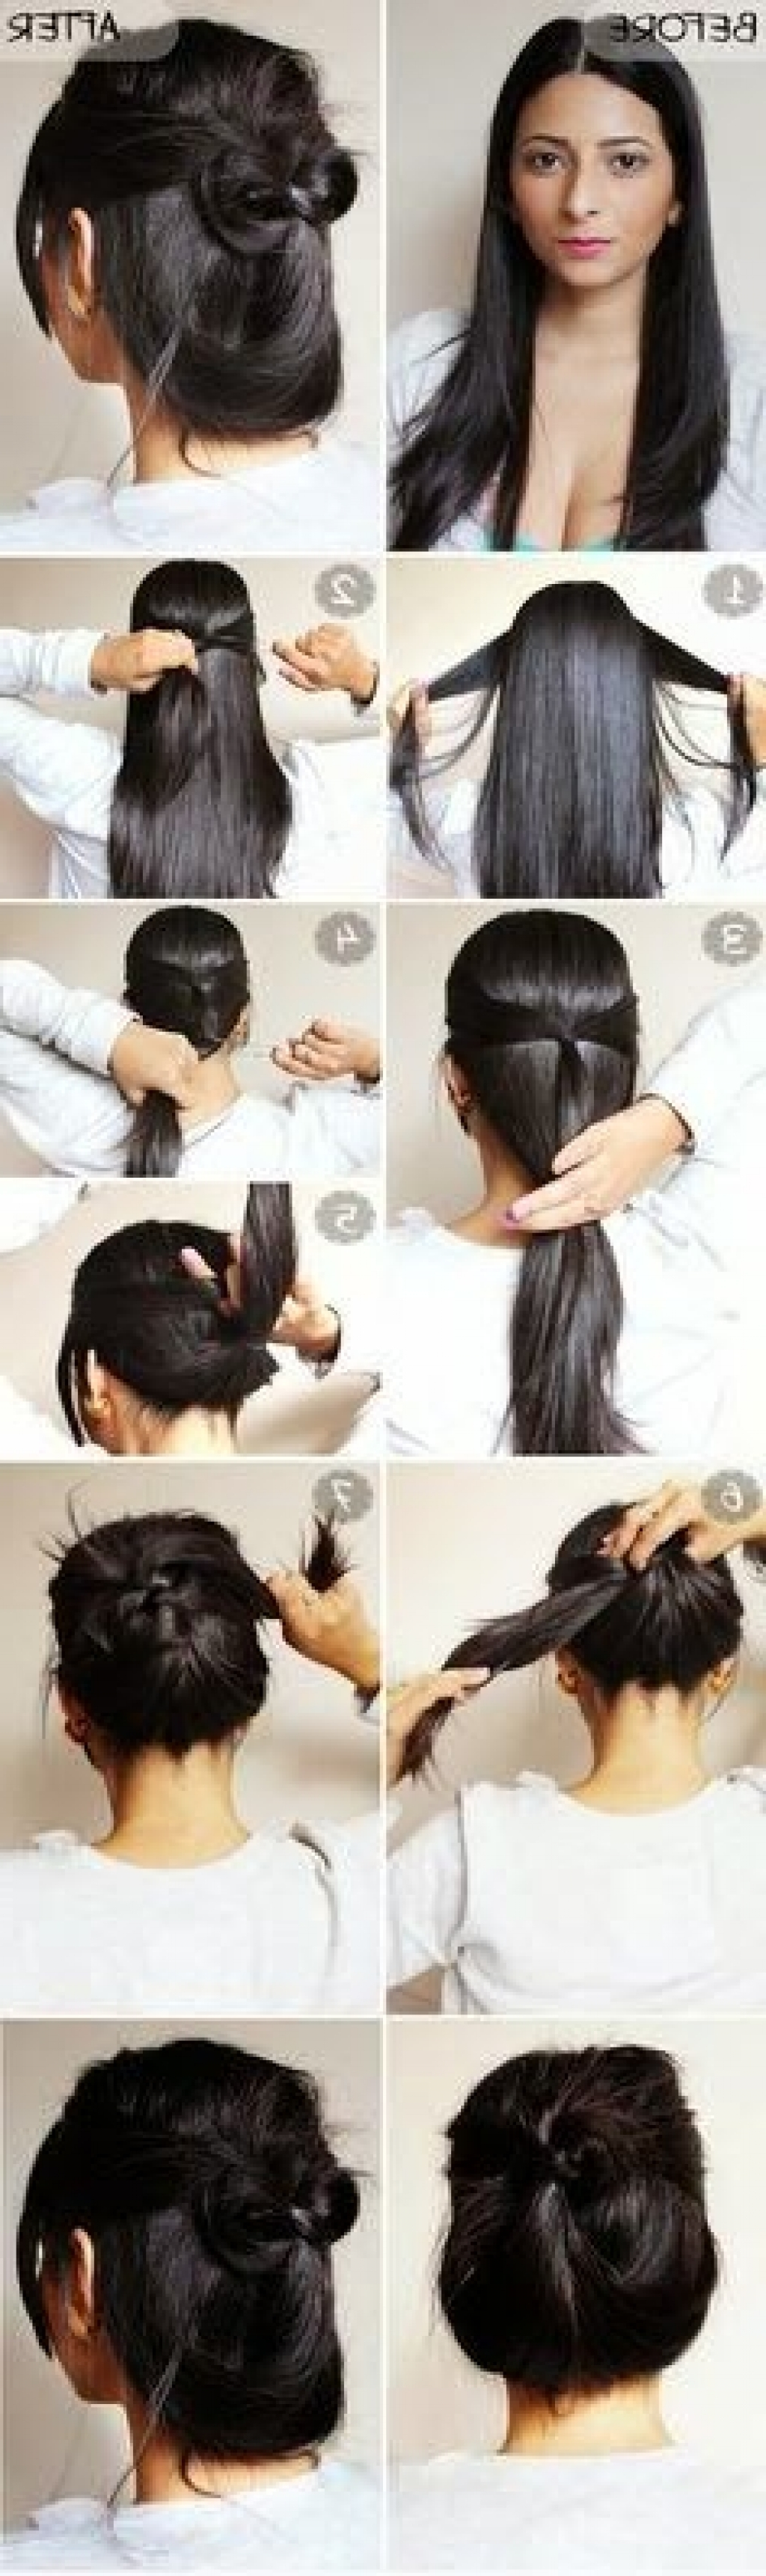 quick amp easy 2 minute casual updo tutorial haircuts amp